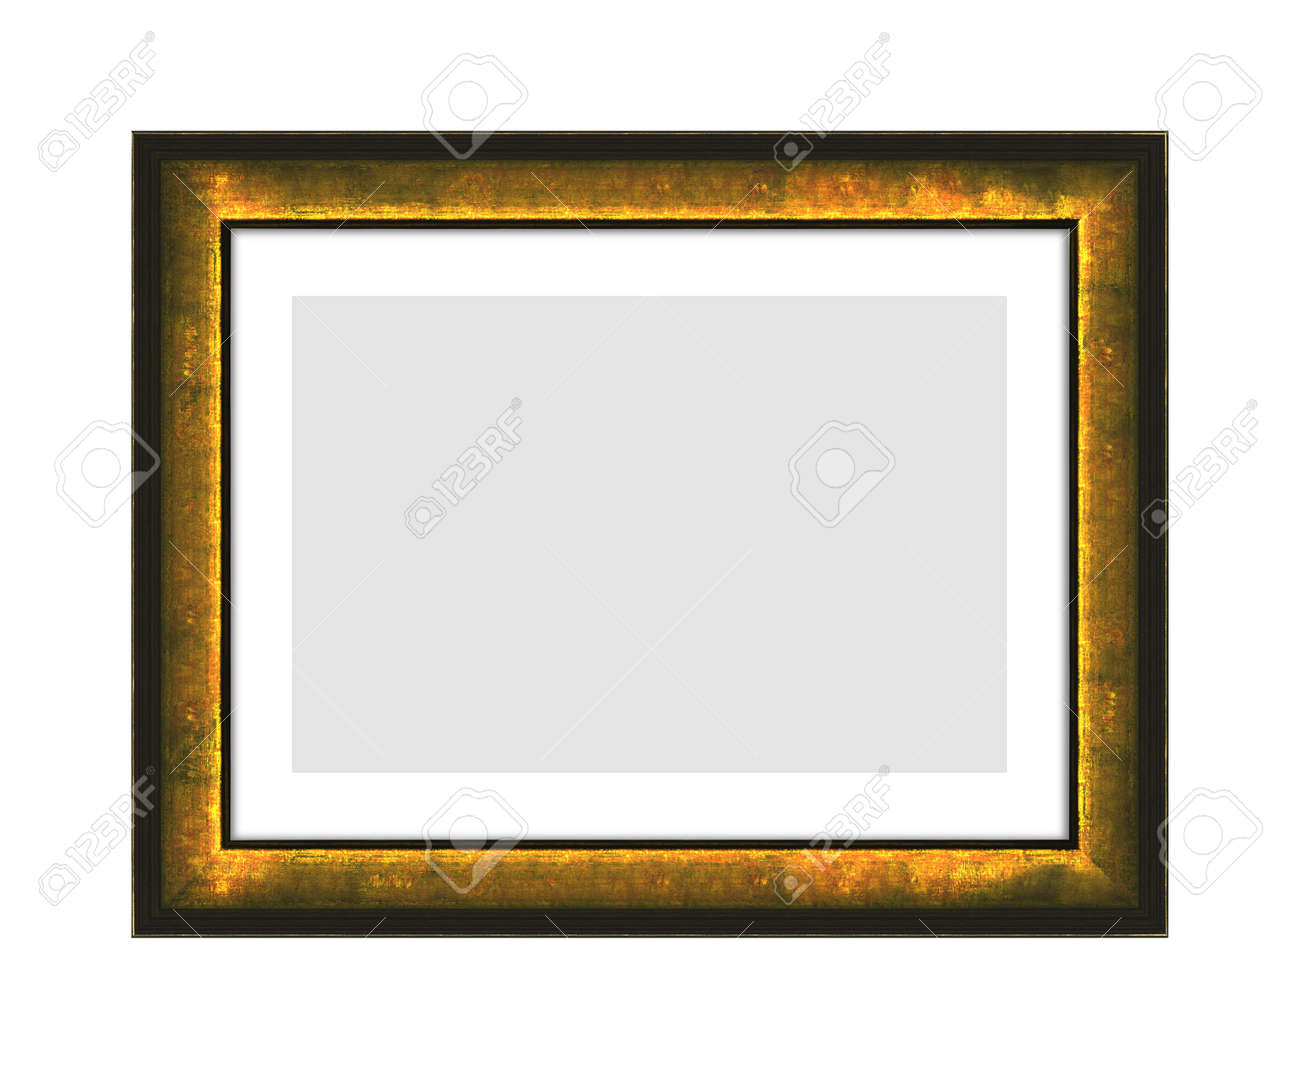 old black wooden frame for picture or photo, frame for a mirror isolated on white background. With clipping path - 170242744